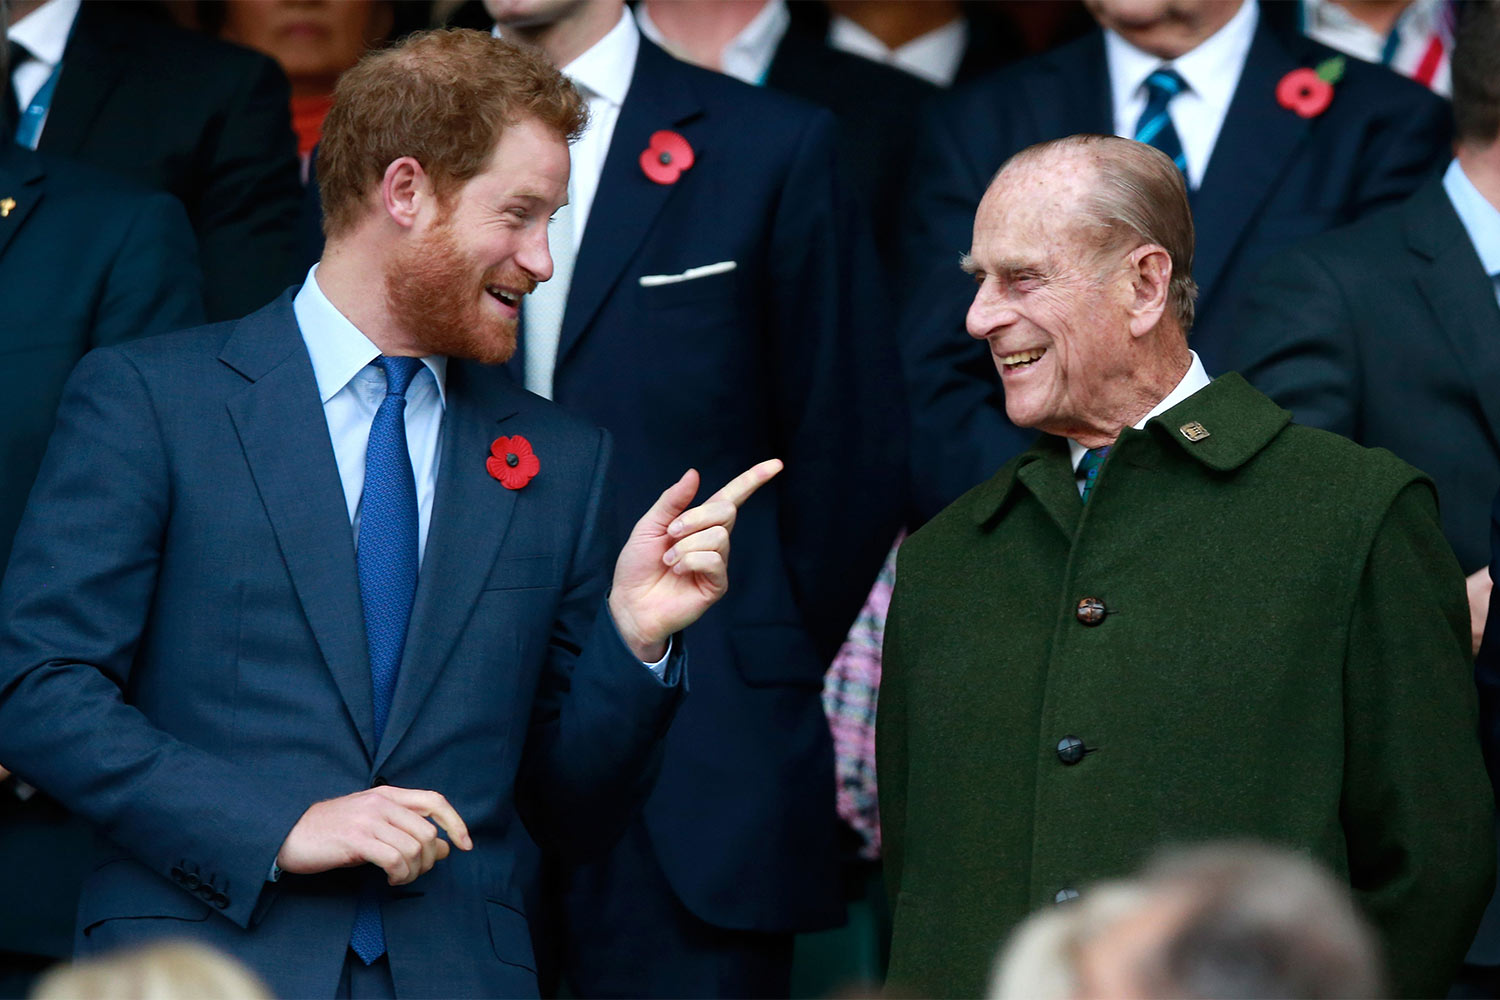 Prince Harry and Prince Phillip